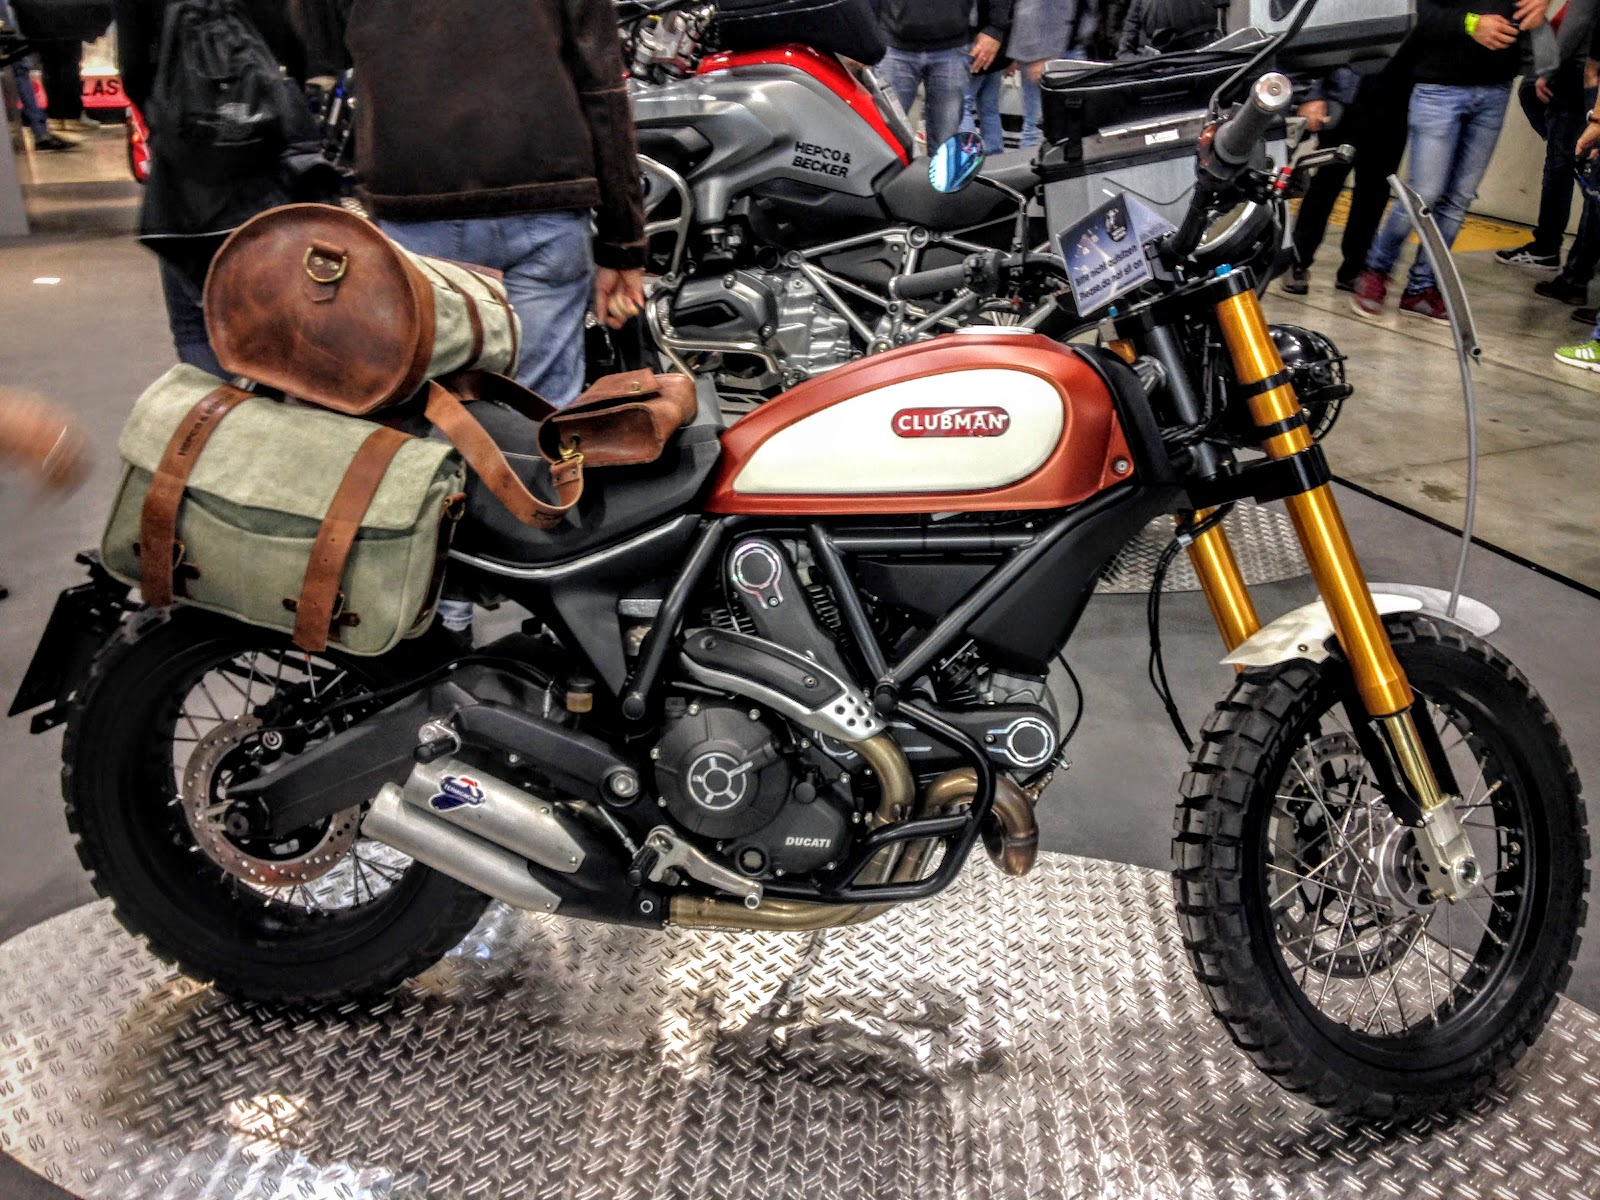 NYDucati: Hepco-Becker-modified Ducati Scrambler